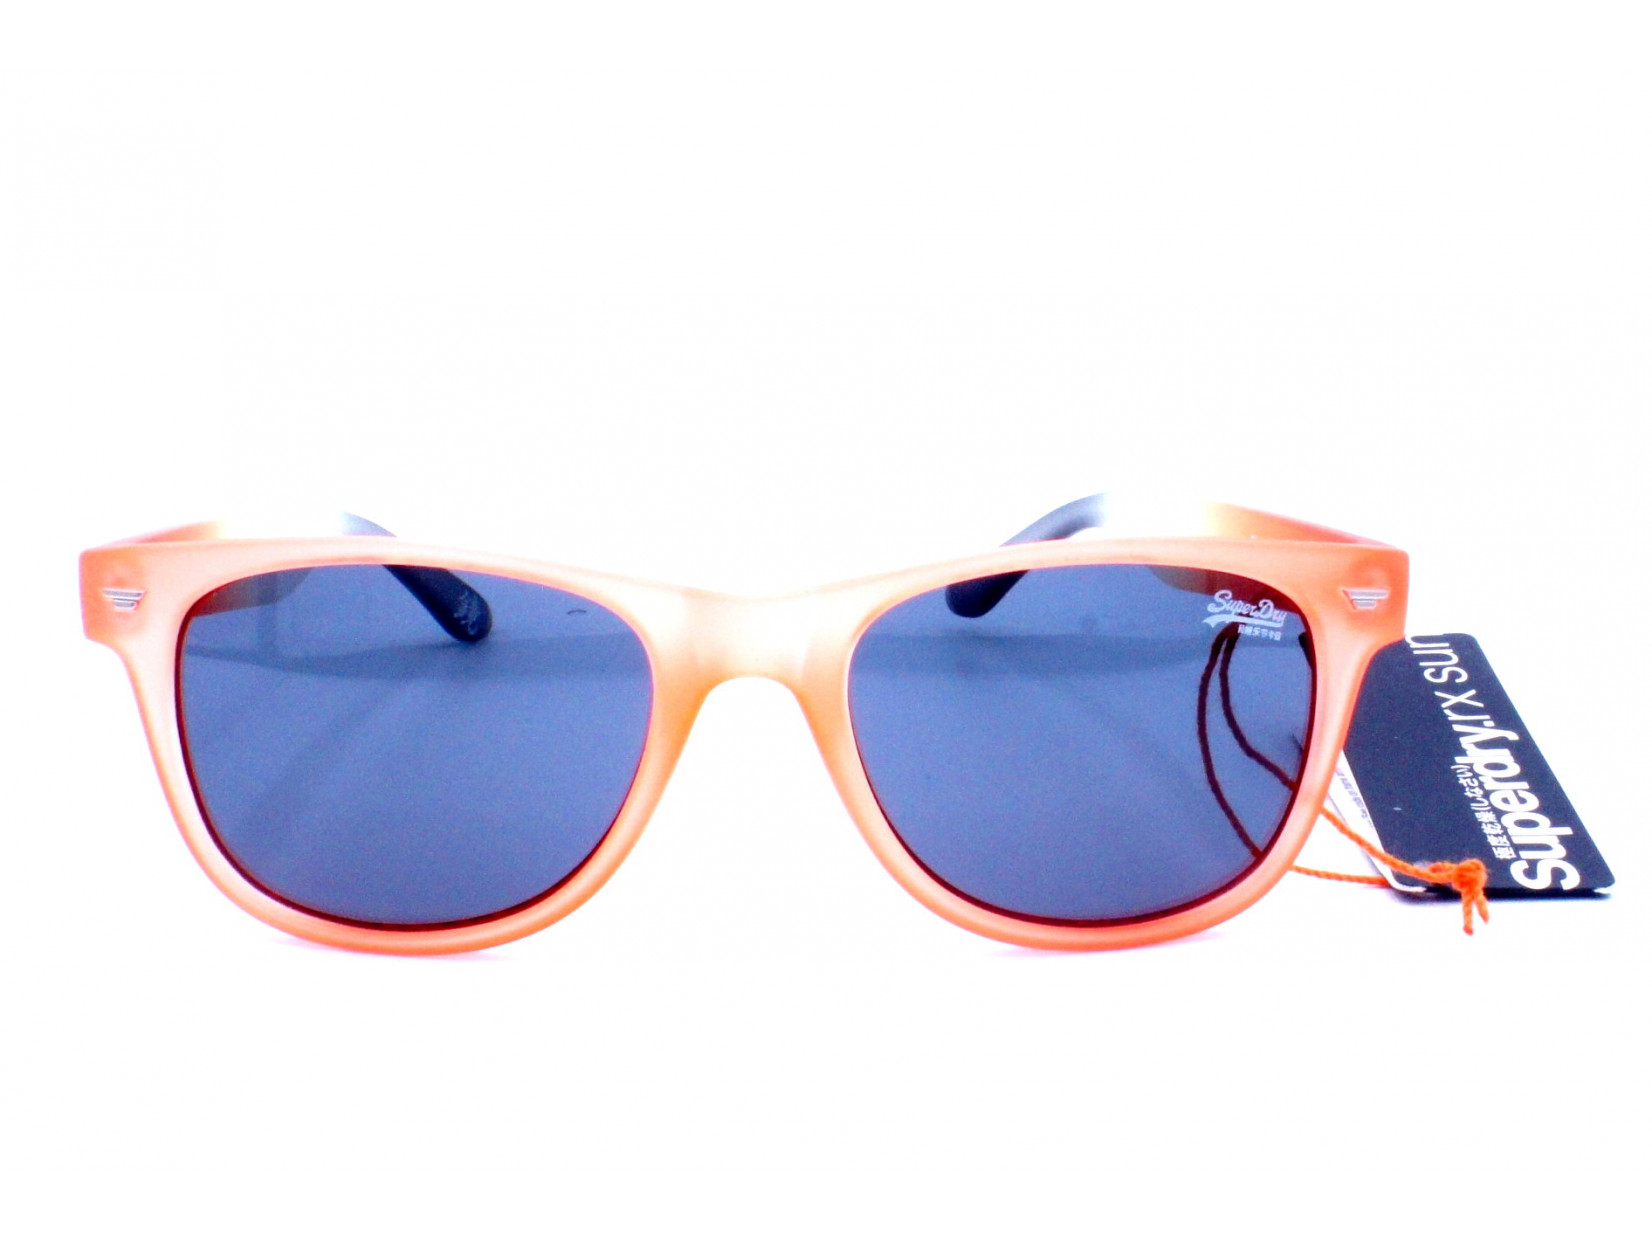 d908de02d264cc 93 93 Lunettes Superdry Orange Label Label Cinemas De Soleil 0pq0xfY